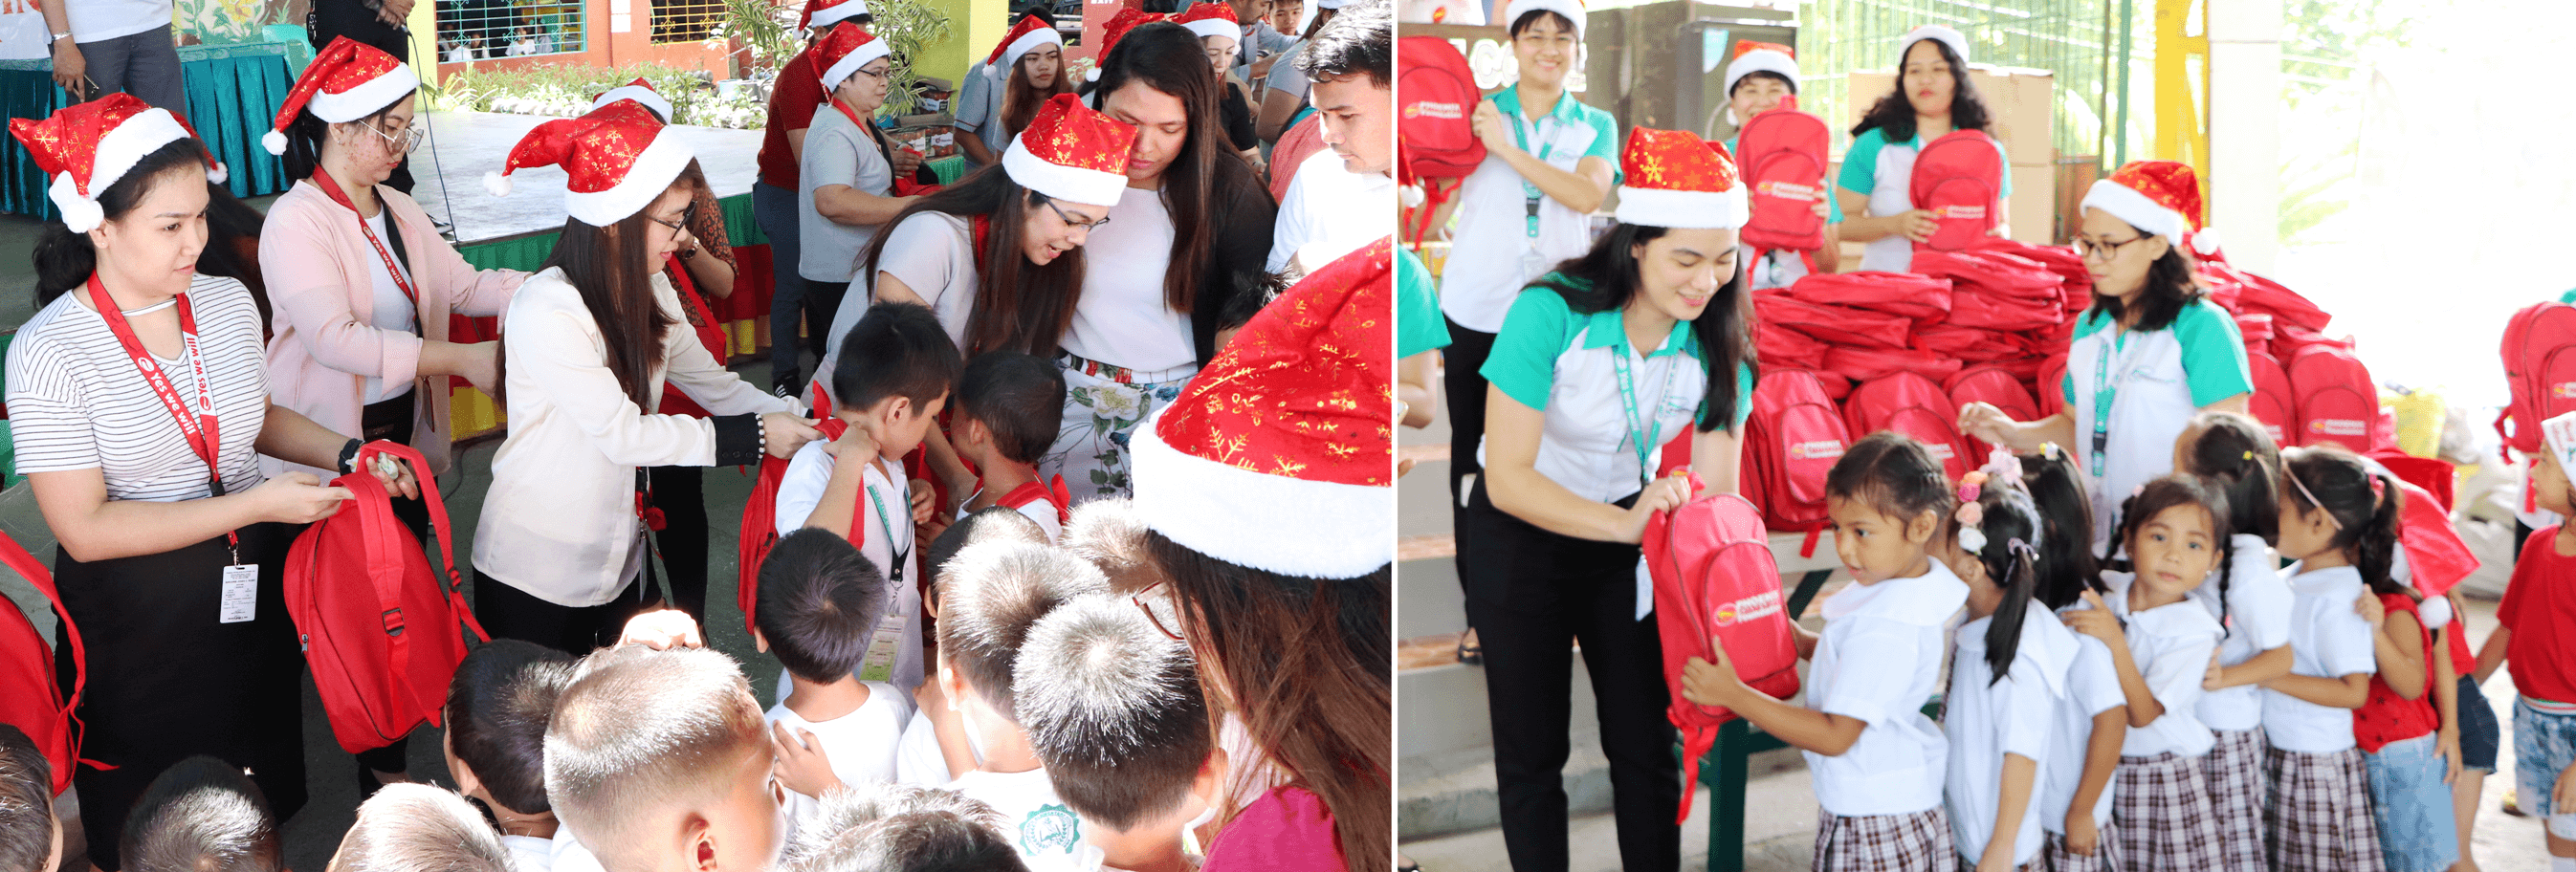 Phoenix brings smiles to over 4,000 kids with Christmas gift-giving tradition